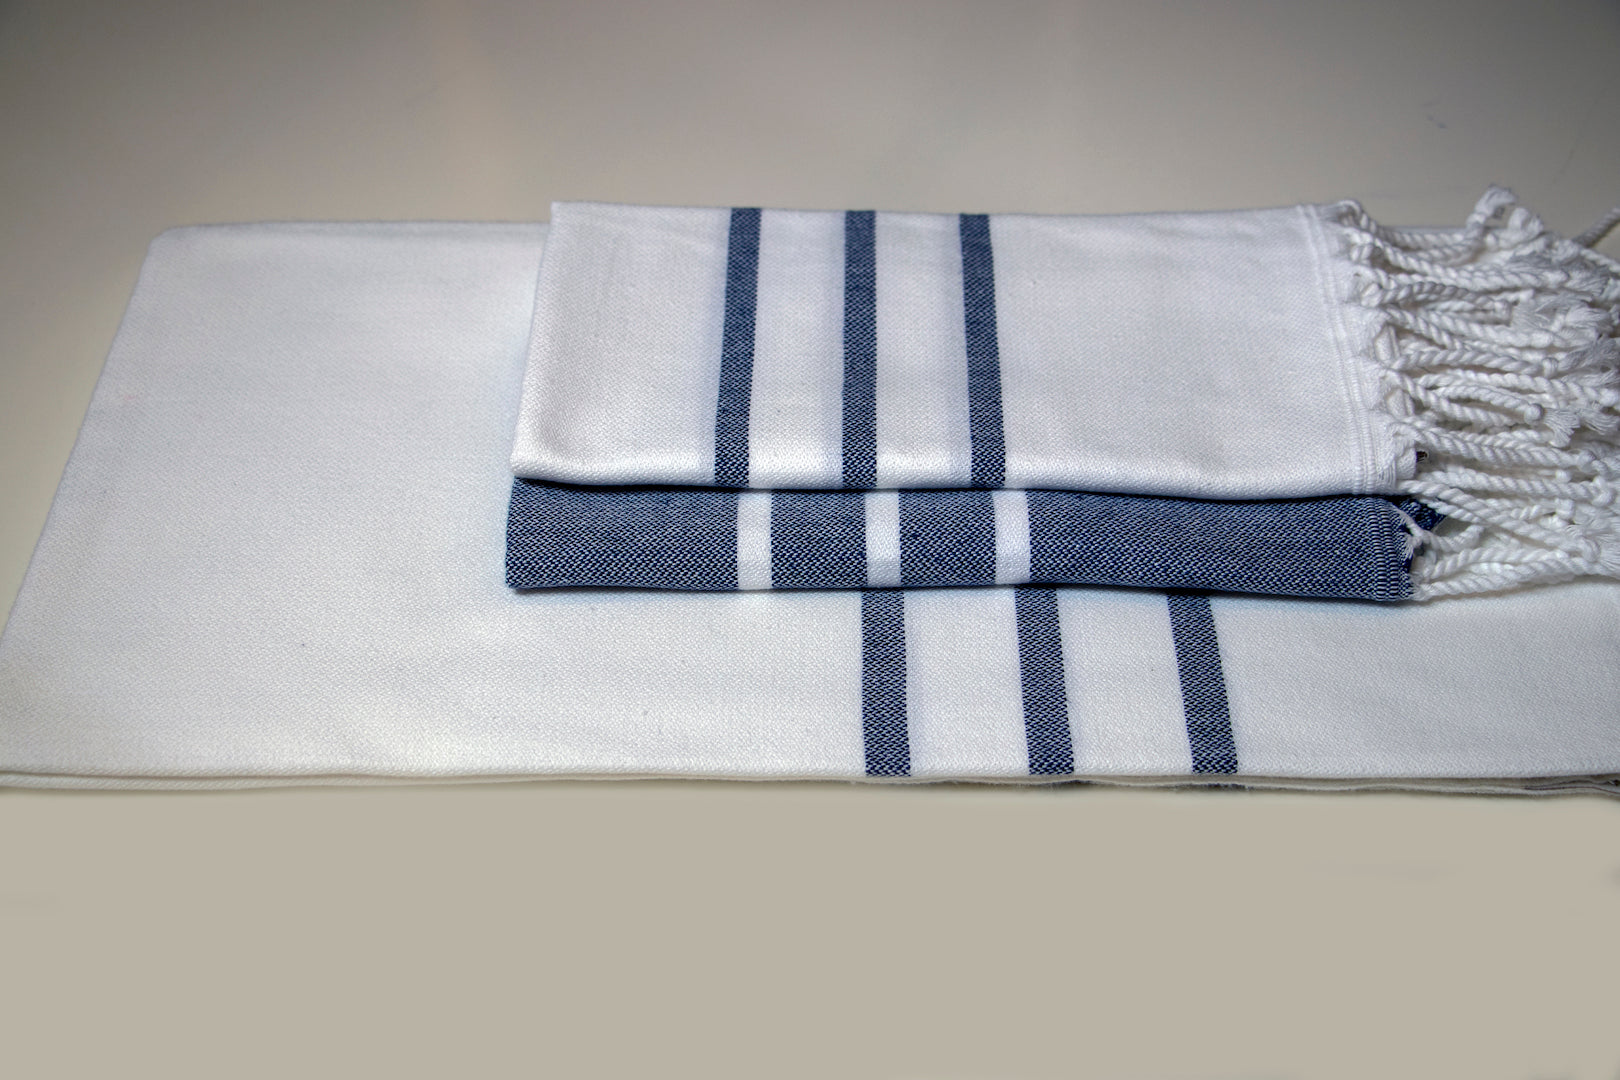 Turkish Hand Towel Collection - white & Navy